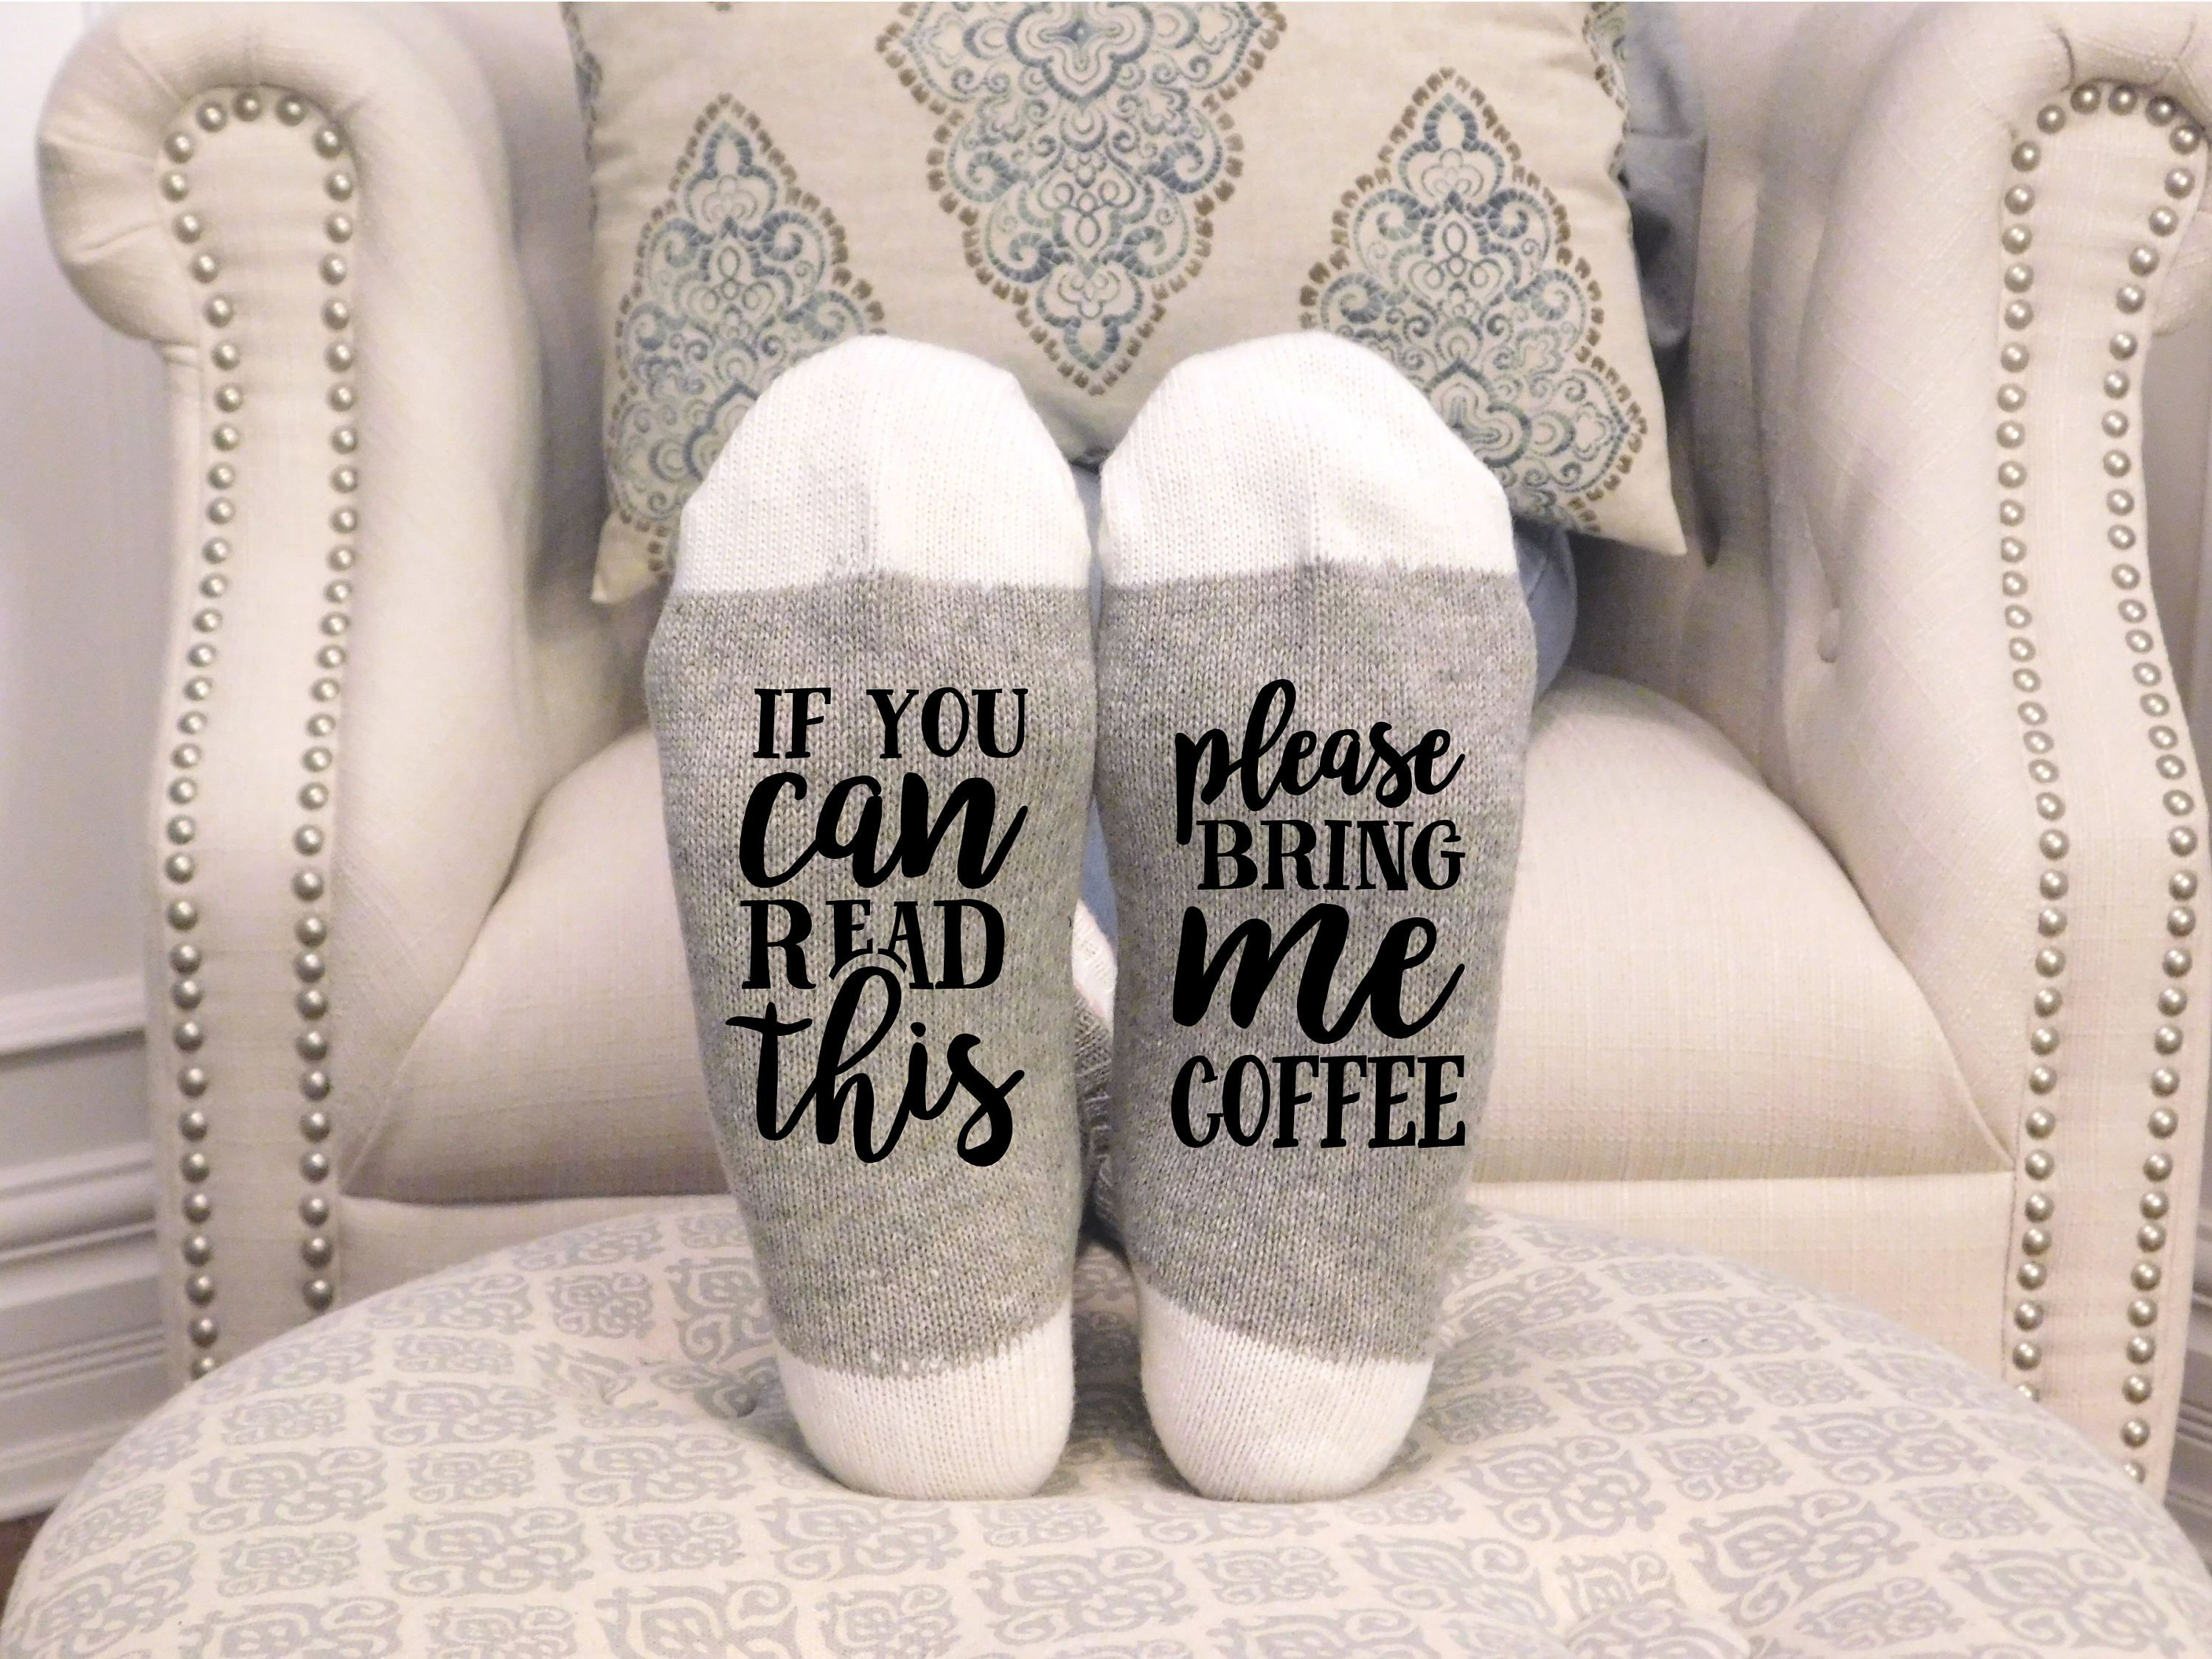 If you can read this please bring me coffee socks funny